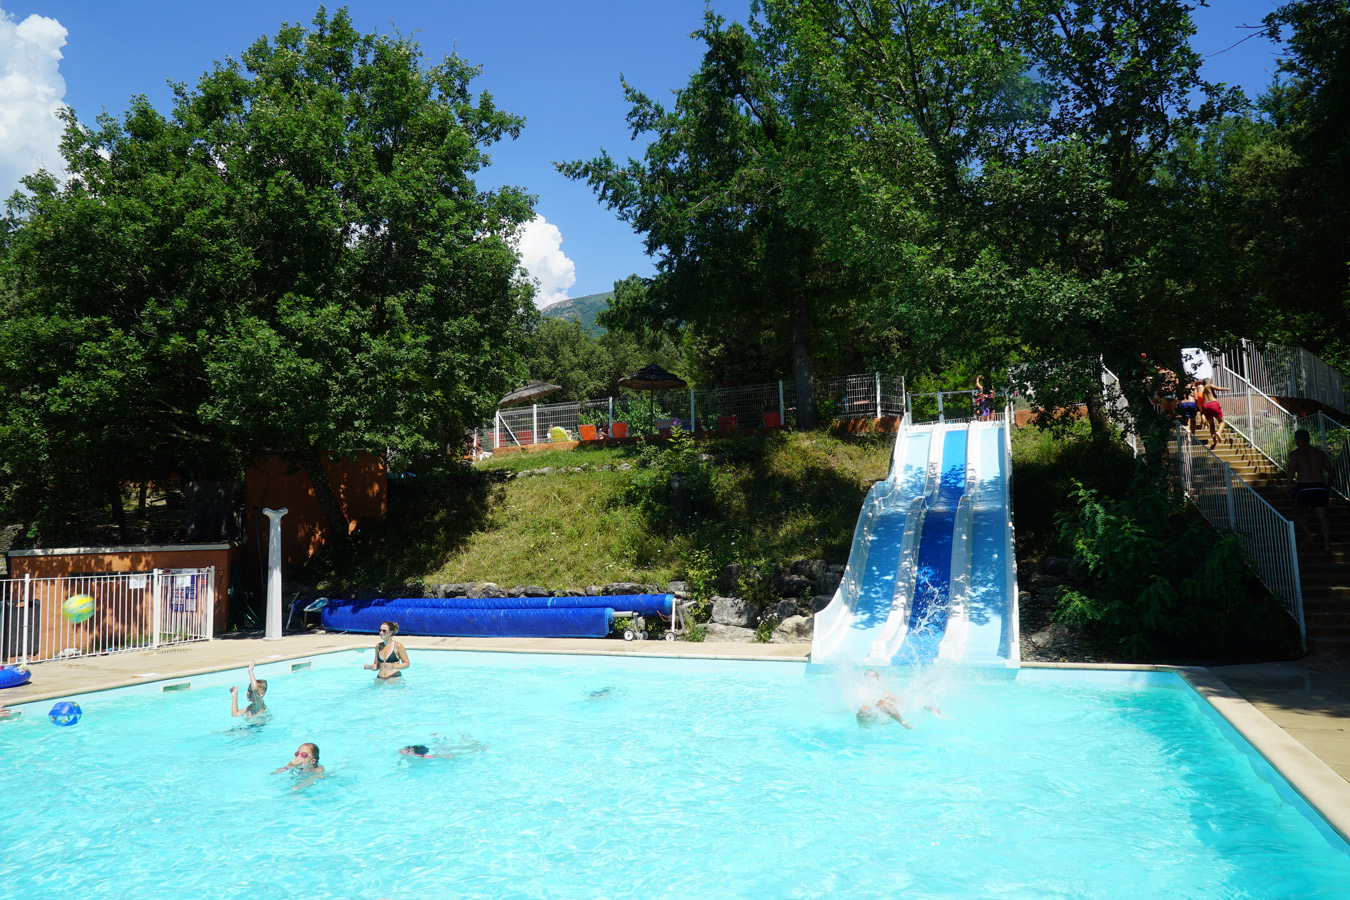 Campsite's swimming pool with water slide